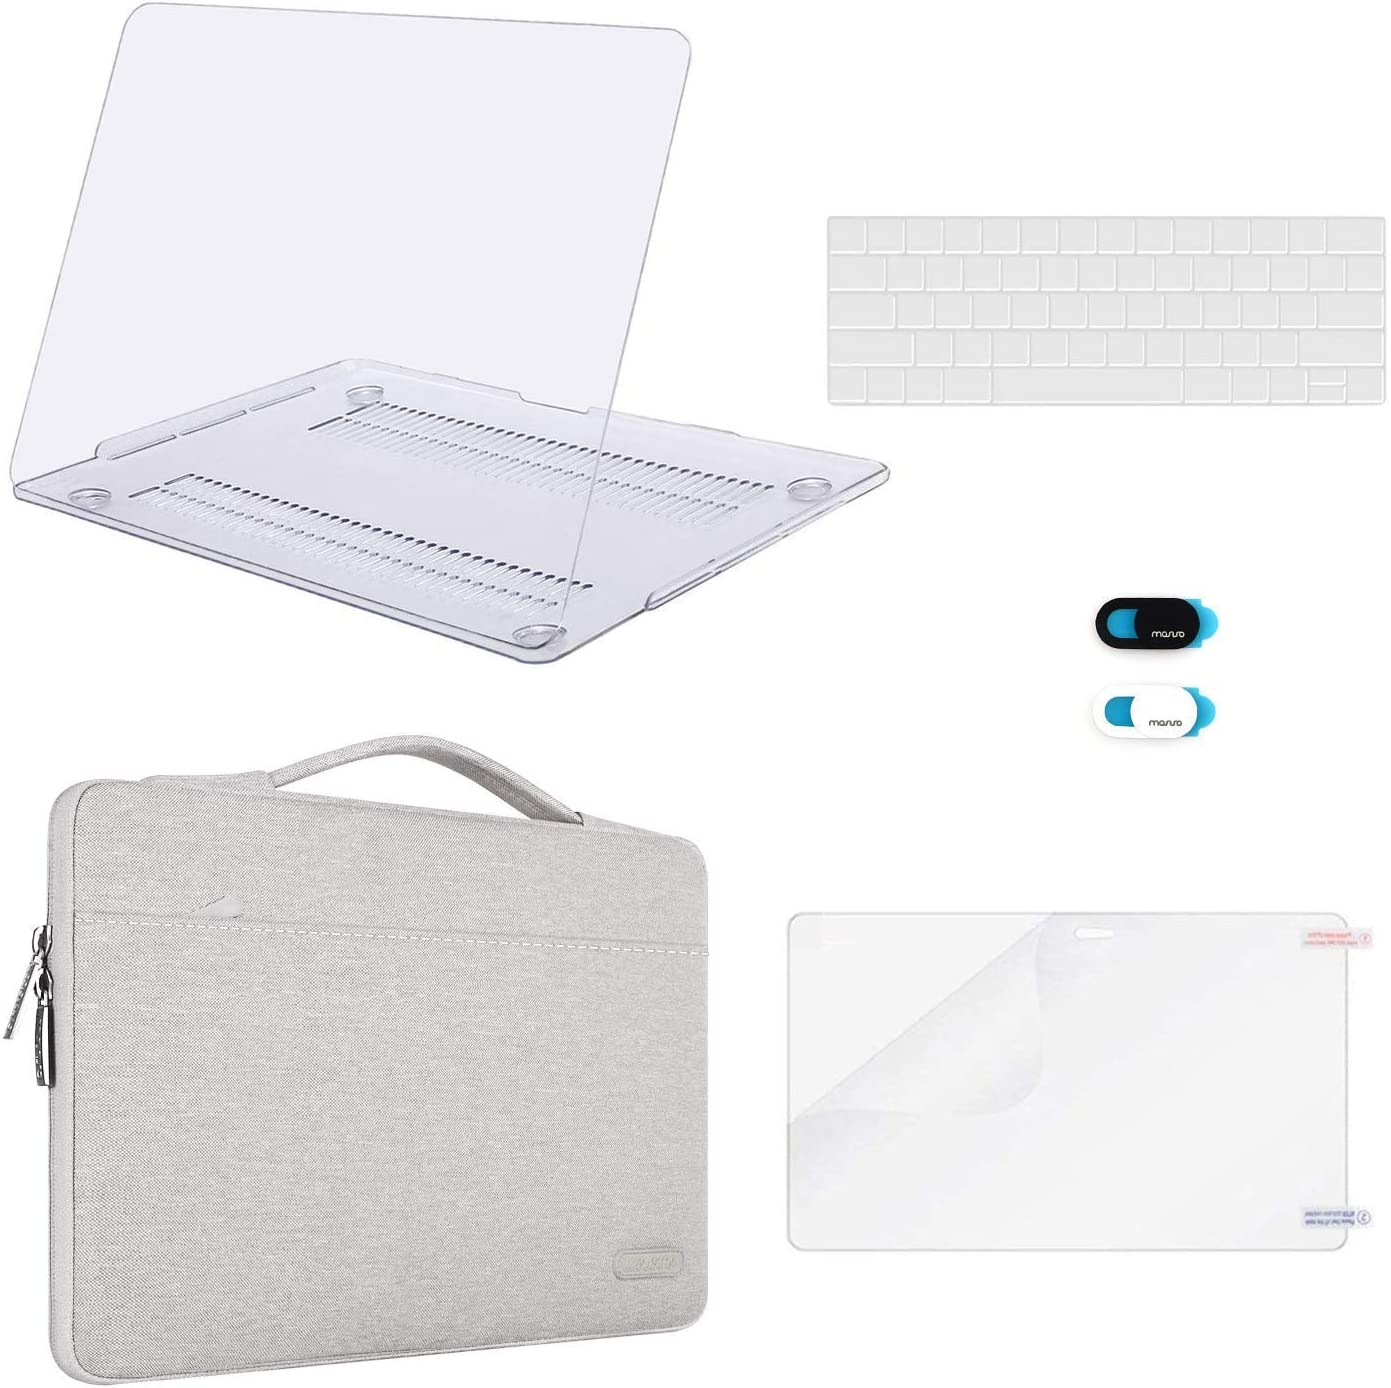 MOSISO Compatible with MacBook Pro 13 inch Case 2019 2018 2017 2016 Release A2159 A1989 A1706 A1708, Plastic Hard Shell Case&Sleeve Bag&Keyboard Skin&Webcam Cover&Screen Protector, Clear&Gray